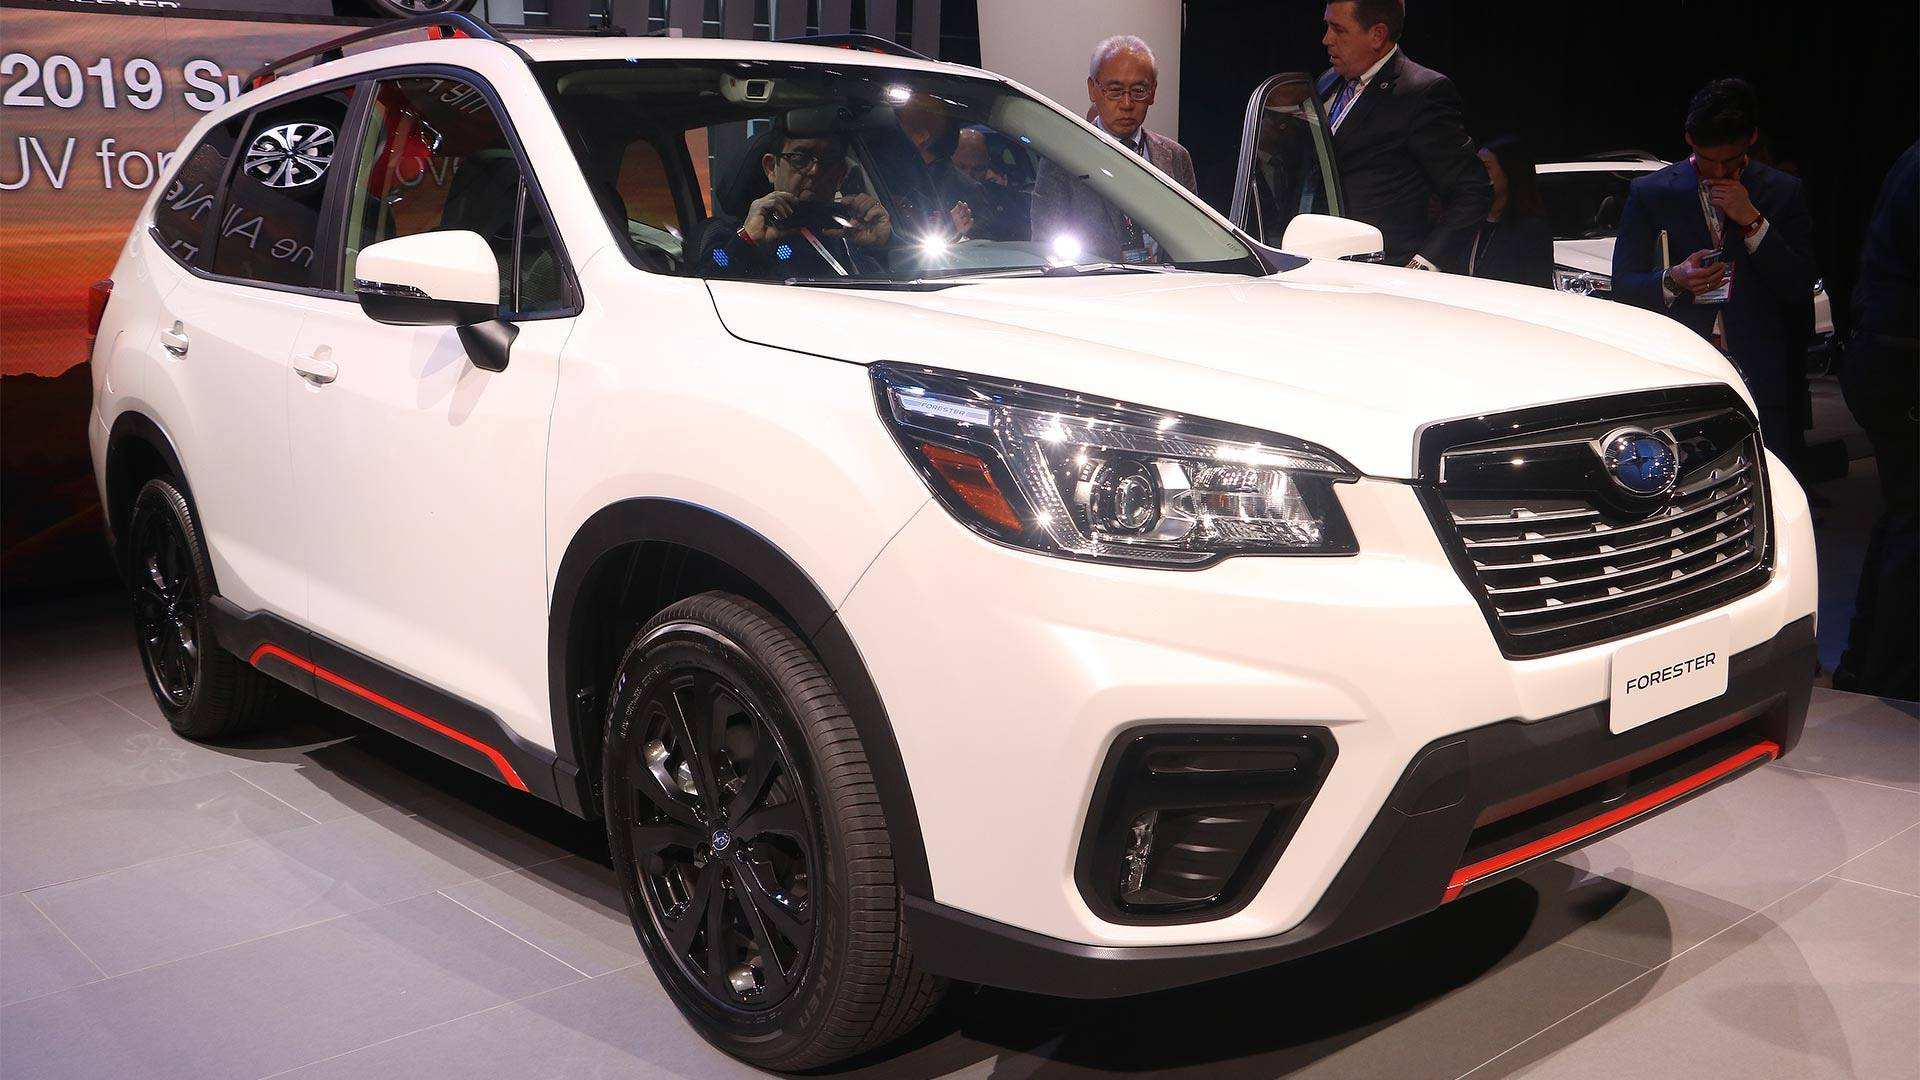 26 The Best Subaru Forester 2019 Ground Clearance Interior